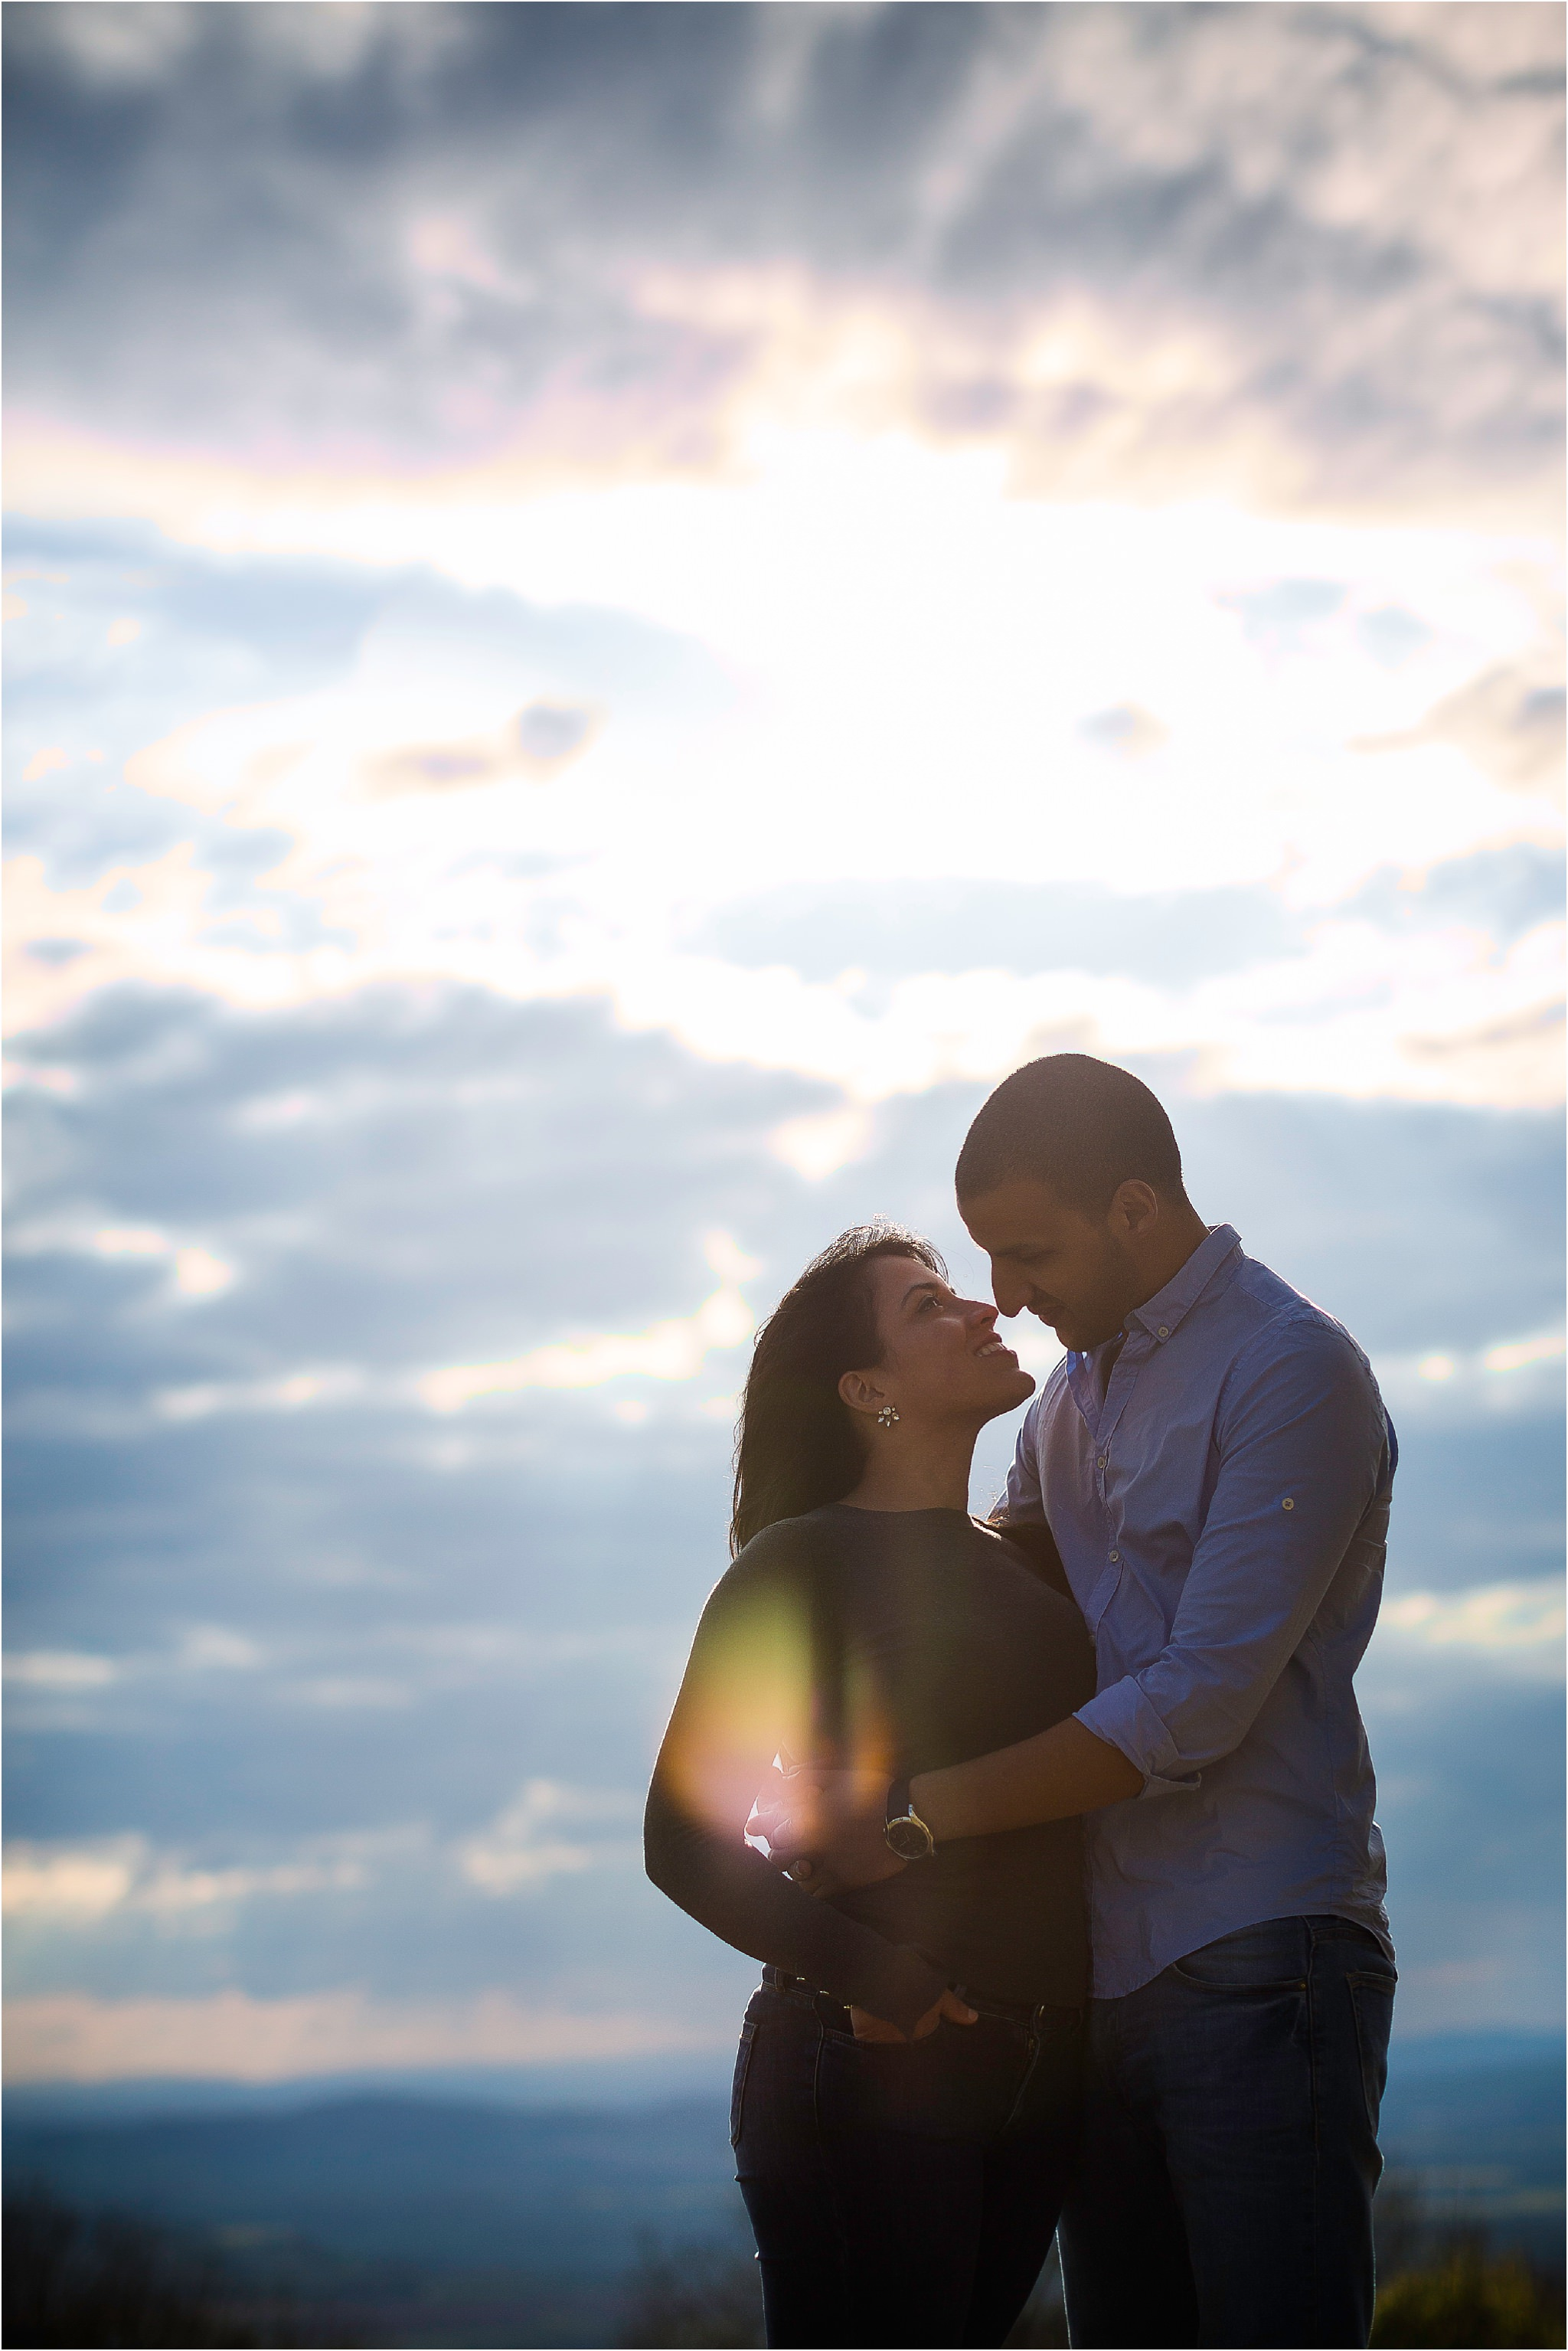 A coupe just about to kiss during their pre wedding shoot in Worcestershire, with dramatic sky and lens flare.